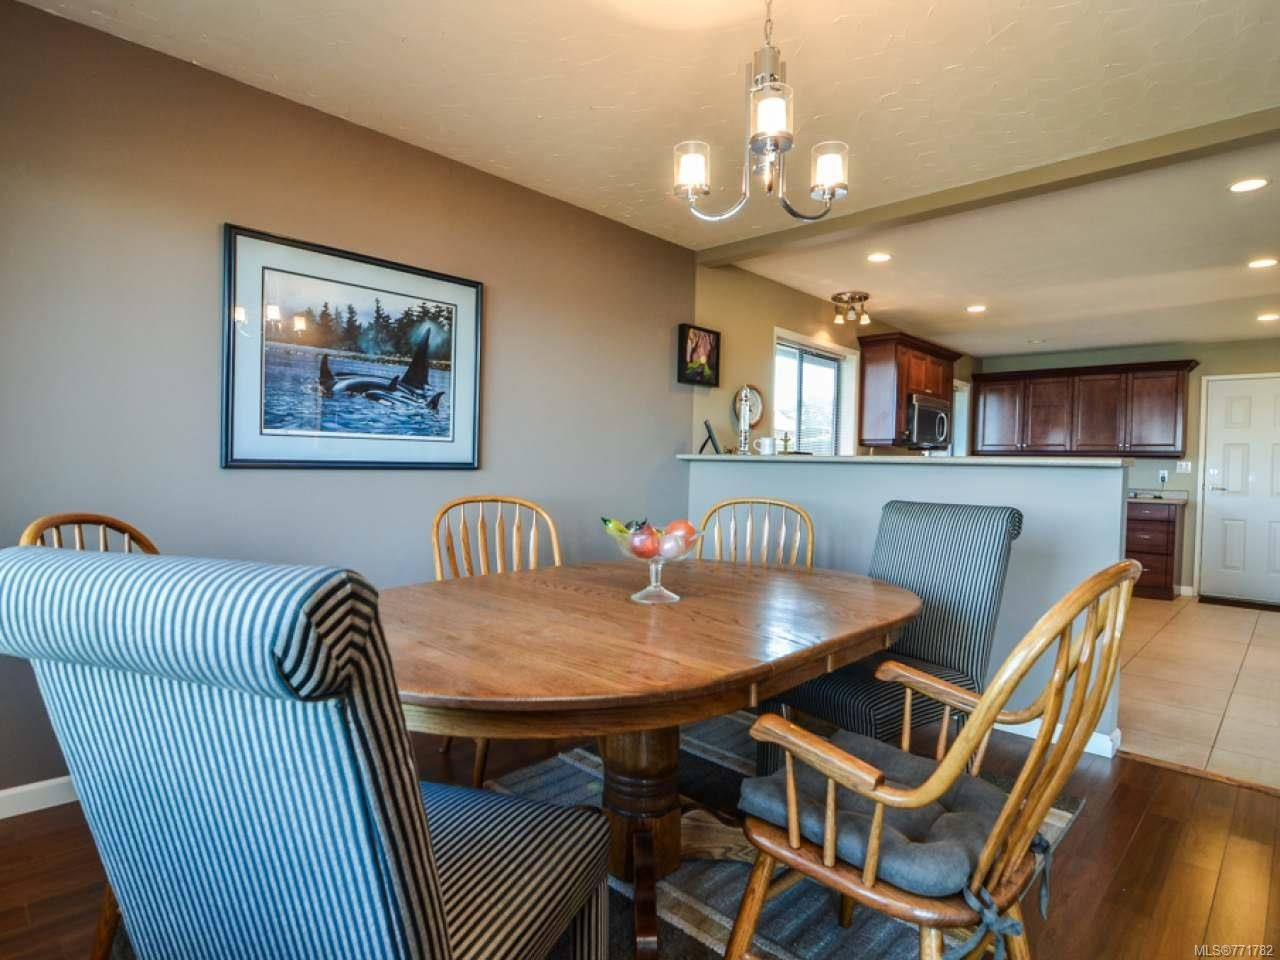 Photo 23: Photos: 451 S McLean St in CAMPBELL RIVER: CR Campbell River Central House for sale (Campbell River)  : MLS®# 771782